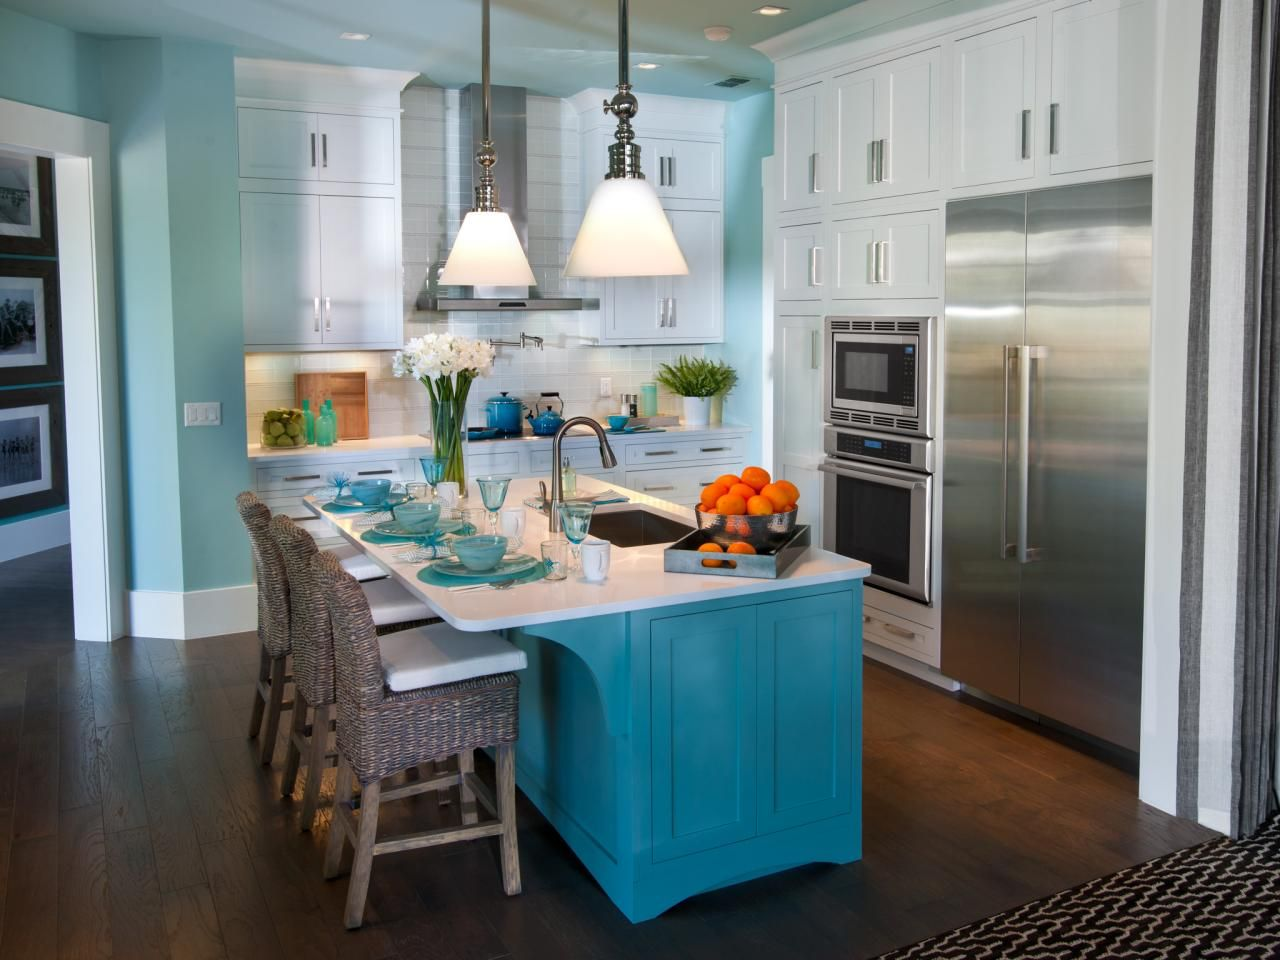 Ordinaire Smart Home 2013 Kitchen Love The Darker Blue Island